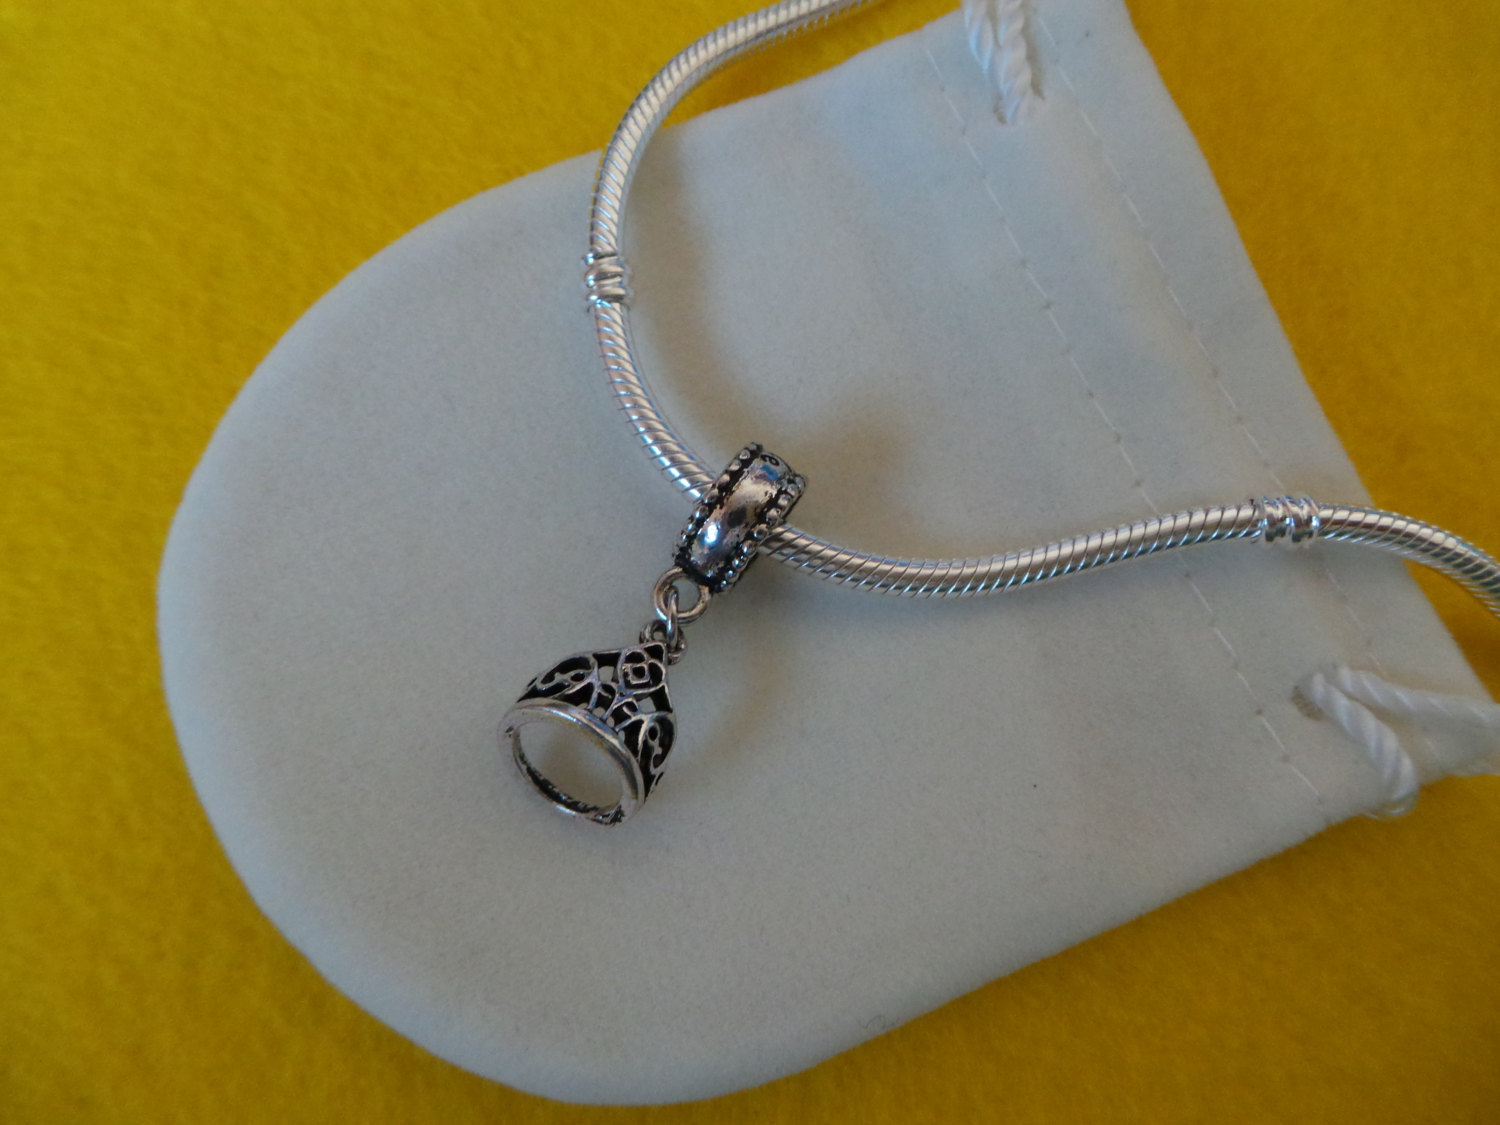 NEW Disney Princess Theme Dangle Charm - Belle's Tiara Crown, silver plate + BAG